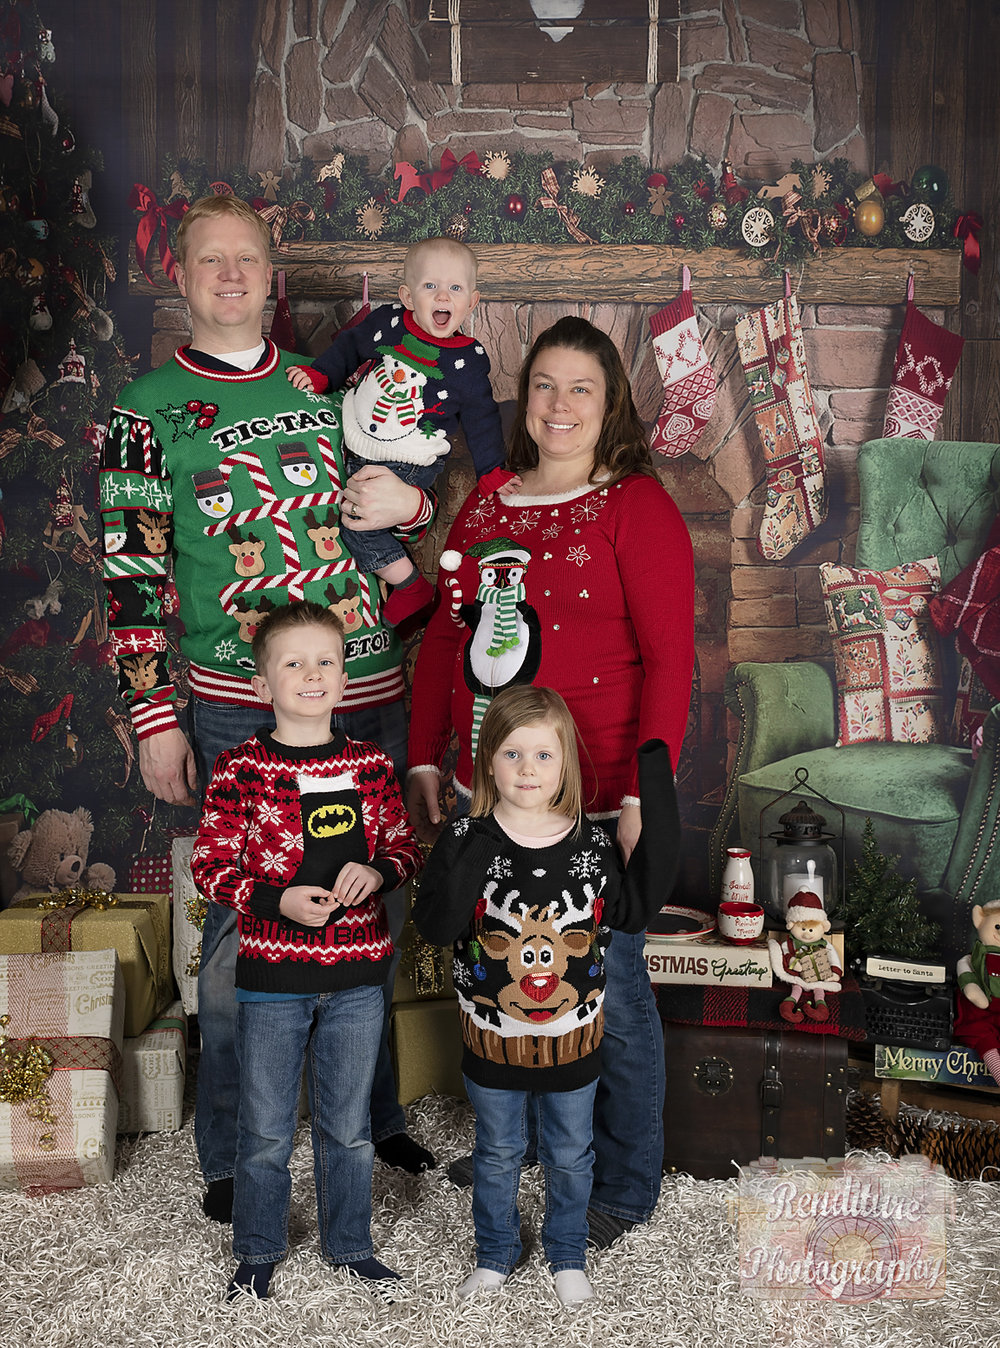 Saskatoon-Family-Renditure-Mini-Session-Photography-Photographer-Christmas-Holiday-Saskatchewan-478 FBR.jpg